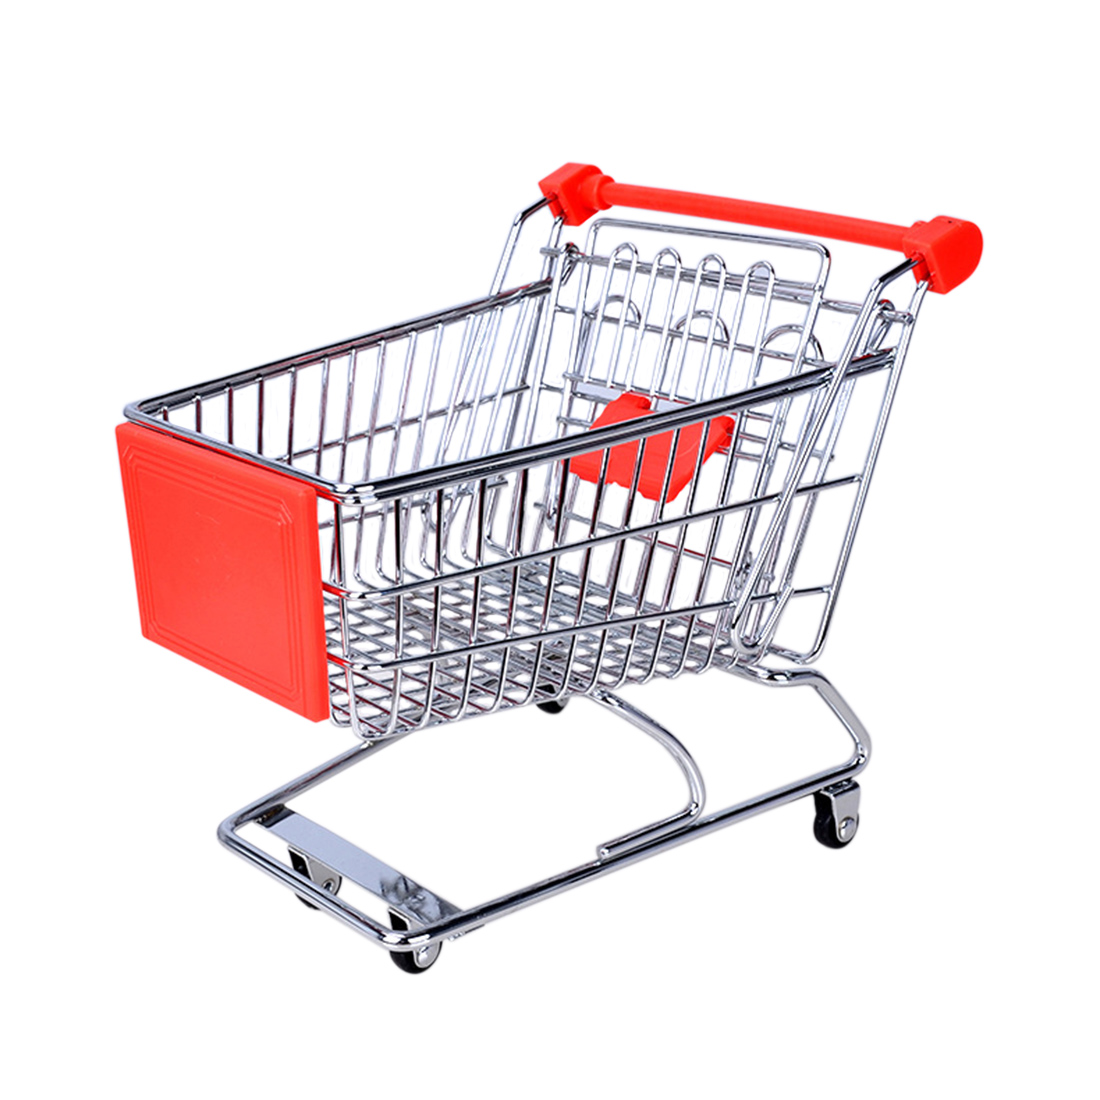 Mini Shopping Carts Toy Cart Simulation Miniature Shopping Cart Storage Pretend Play Toys Handcart Toy Baby Trolley For Kids